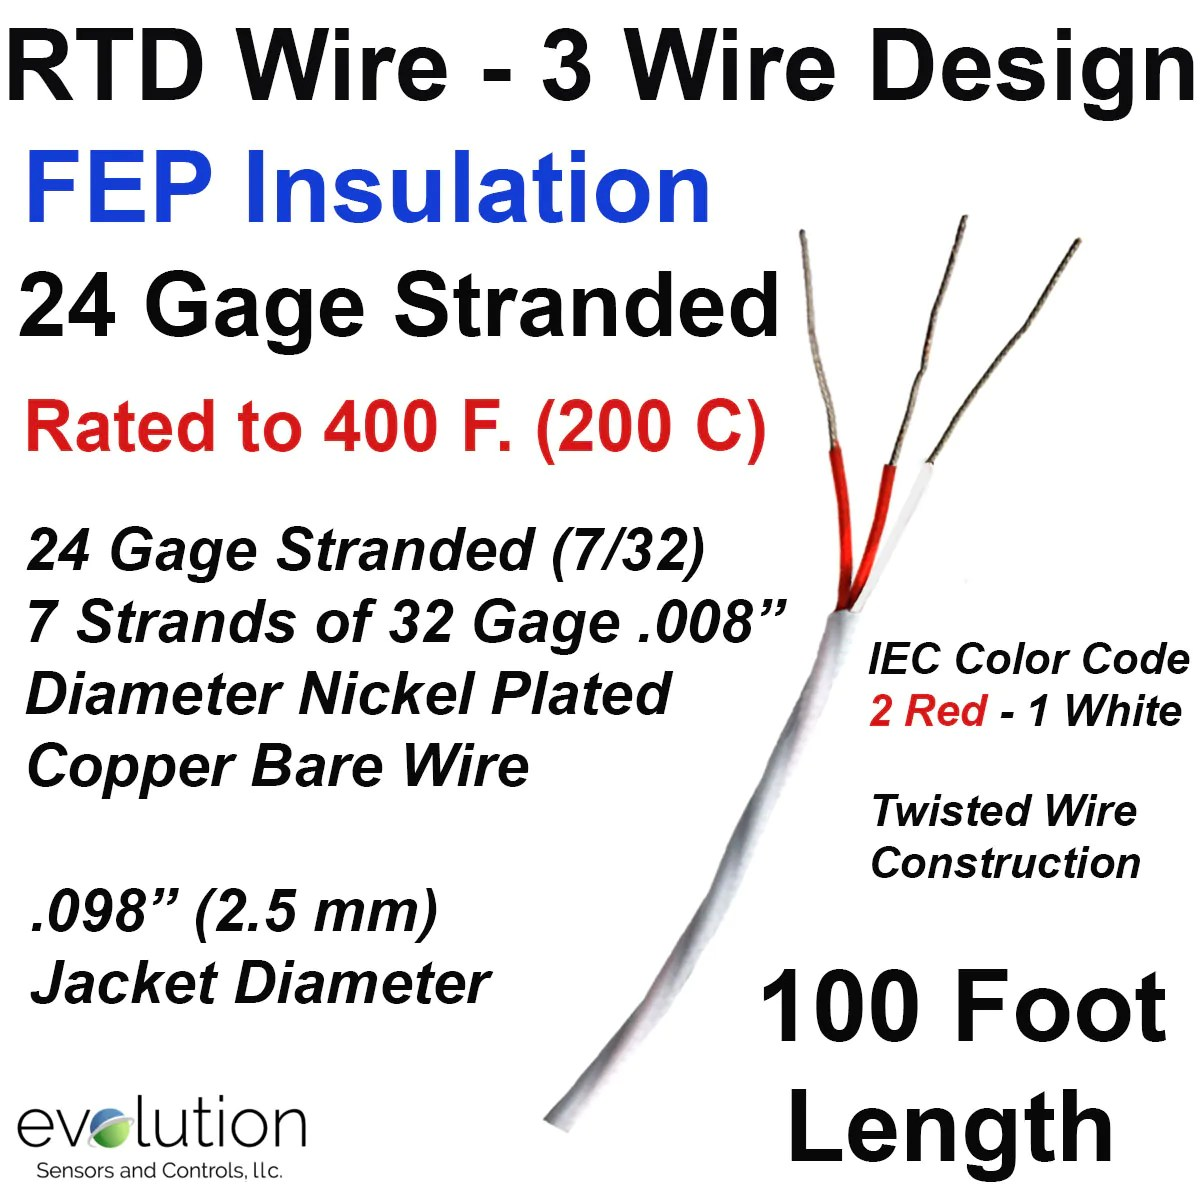 hight resolution of rtd wiring color code wiring diagram page 3 wire rtd wiring color code rtd wiring color code